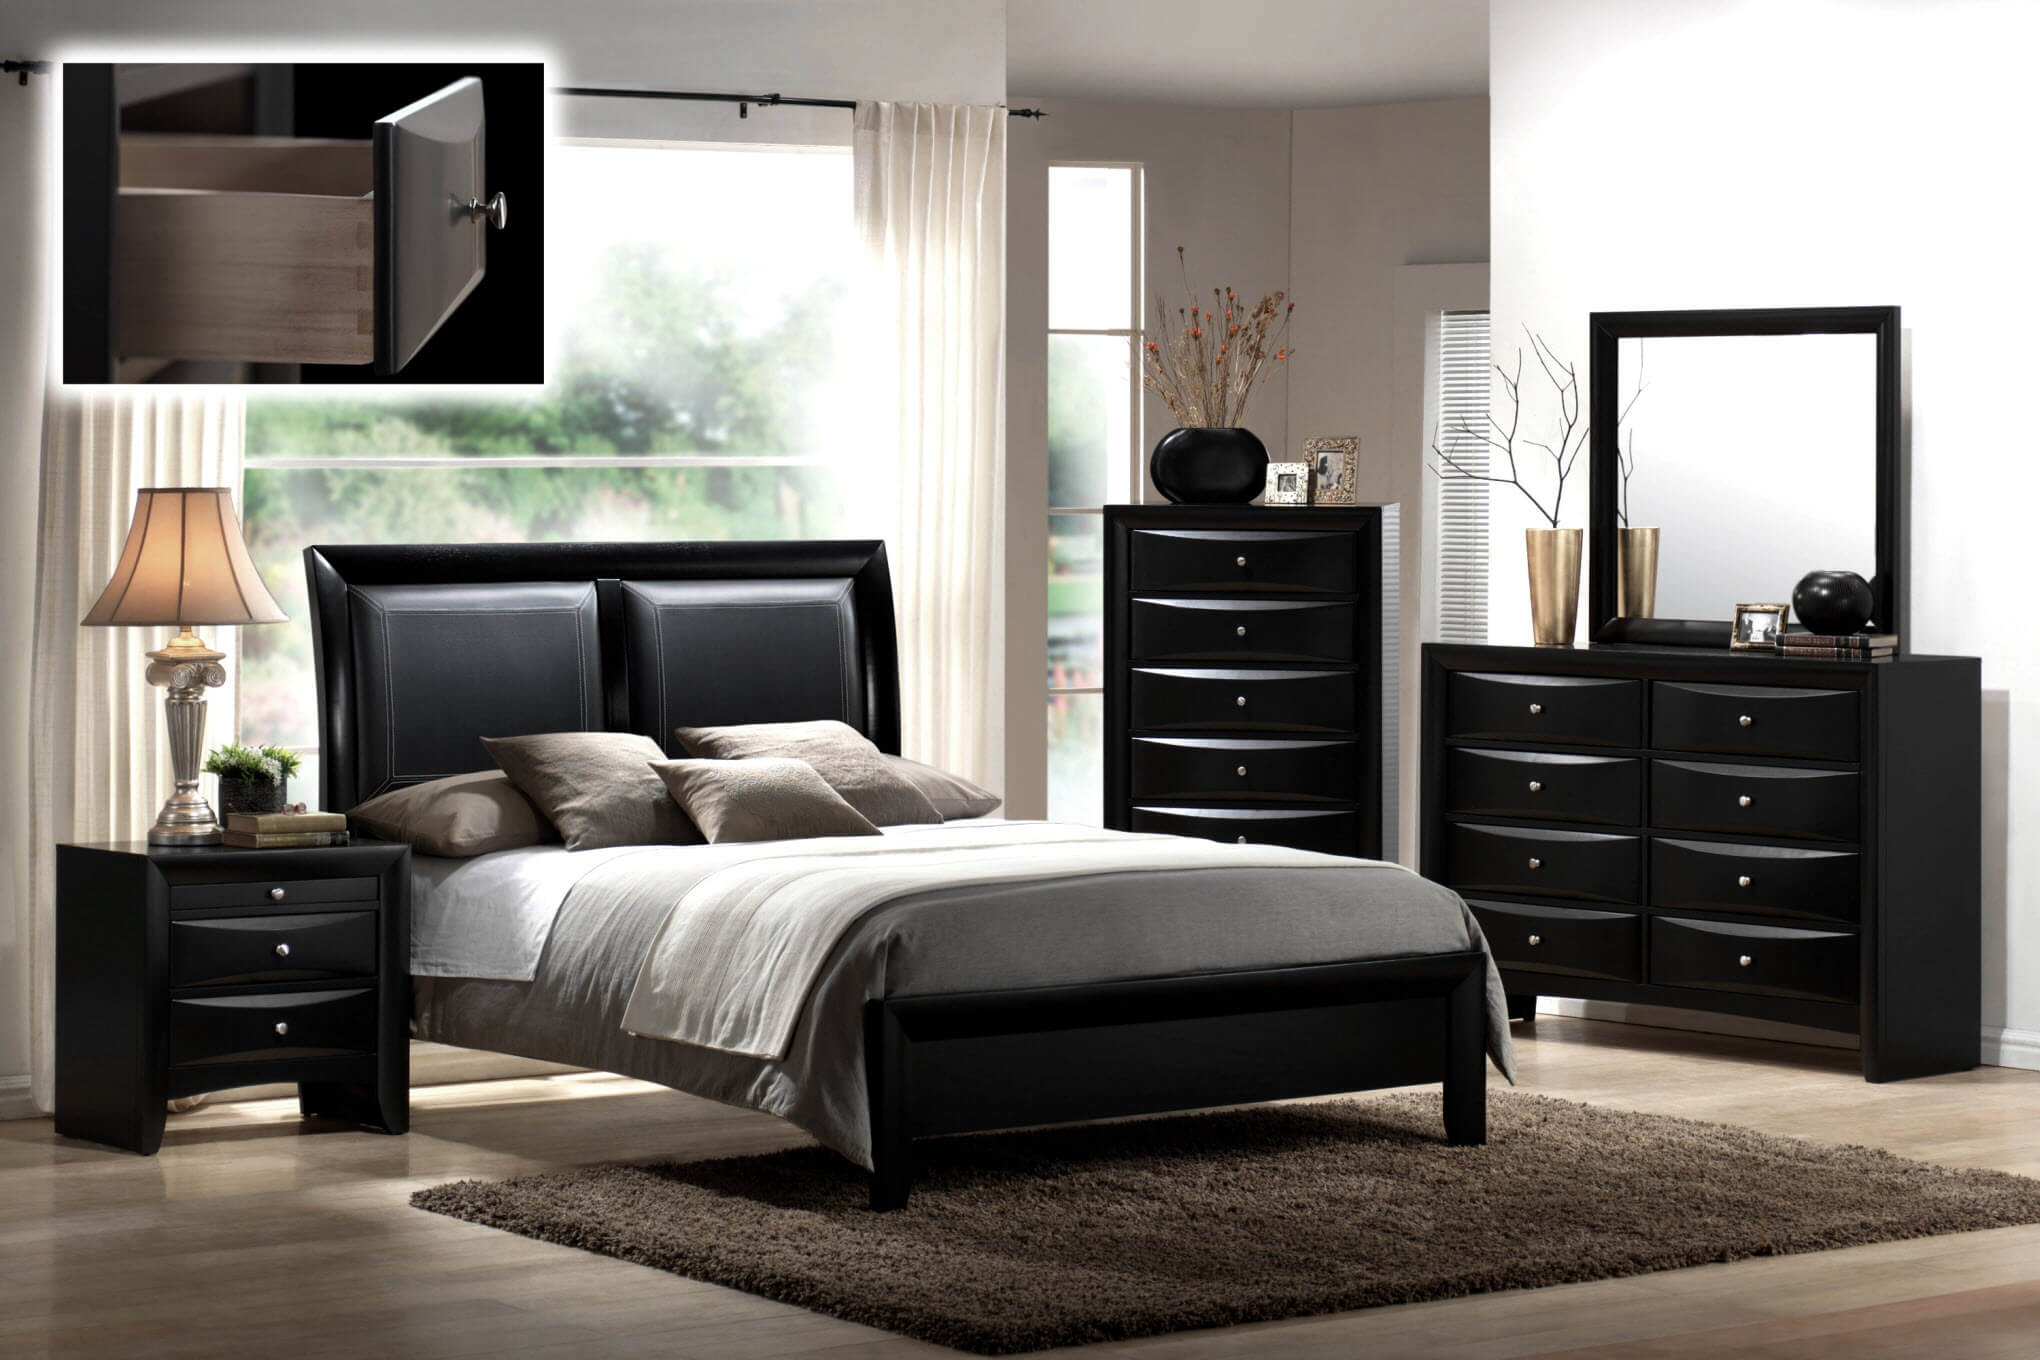 B4280 Crown Mark Emily Black Bedroom Set